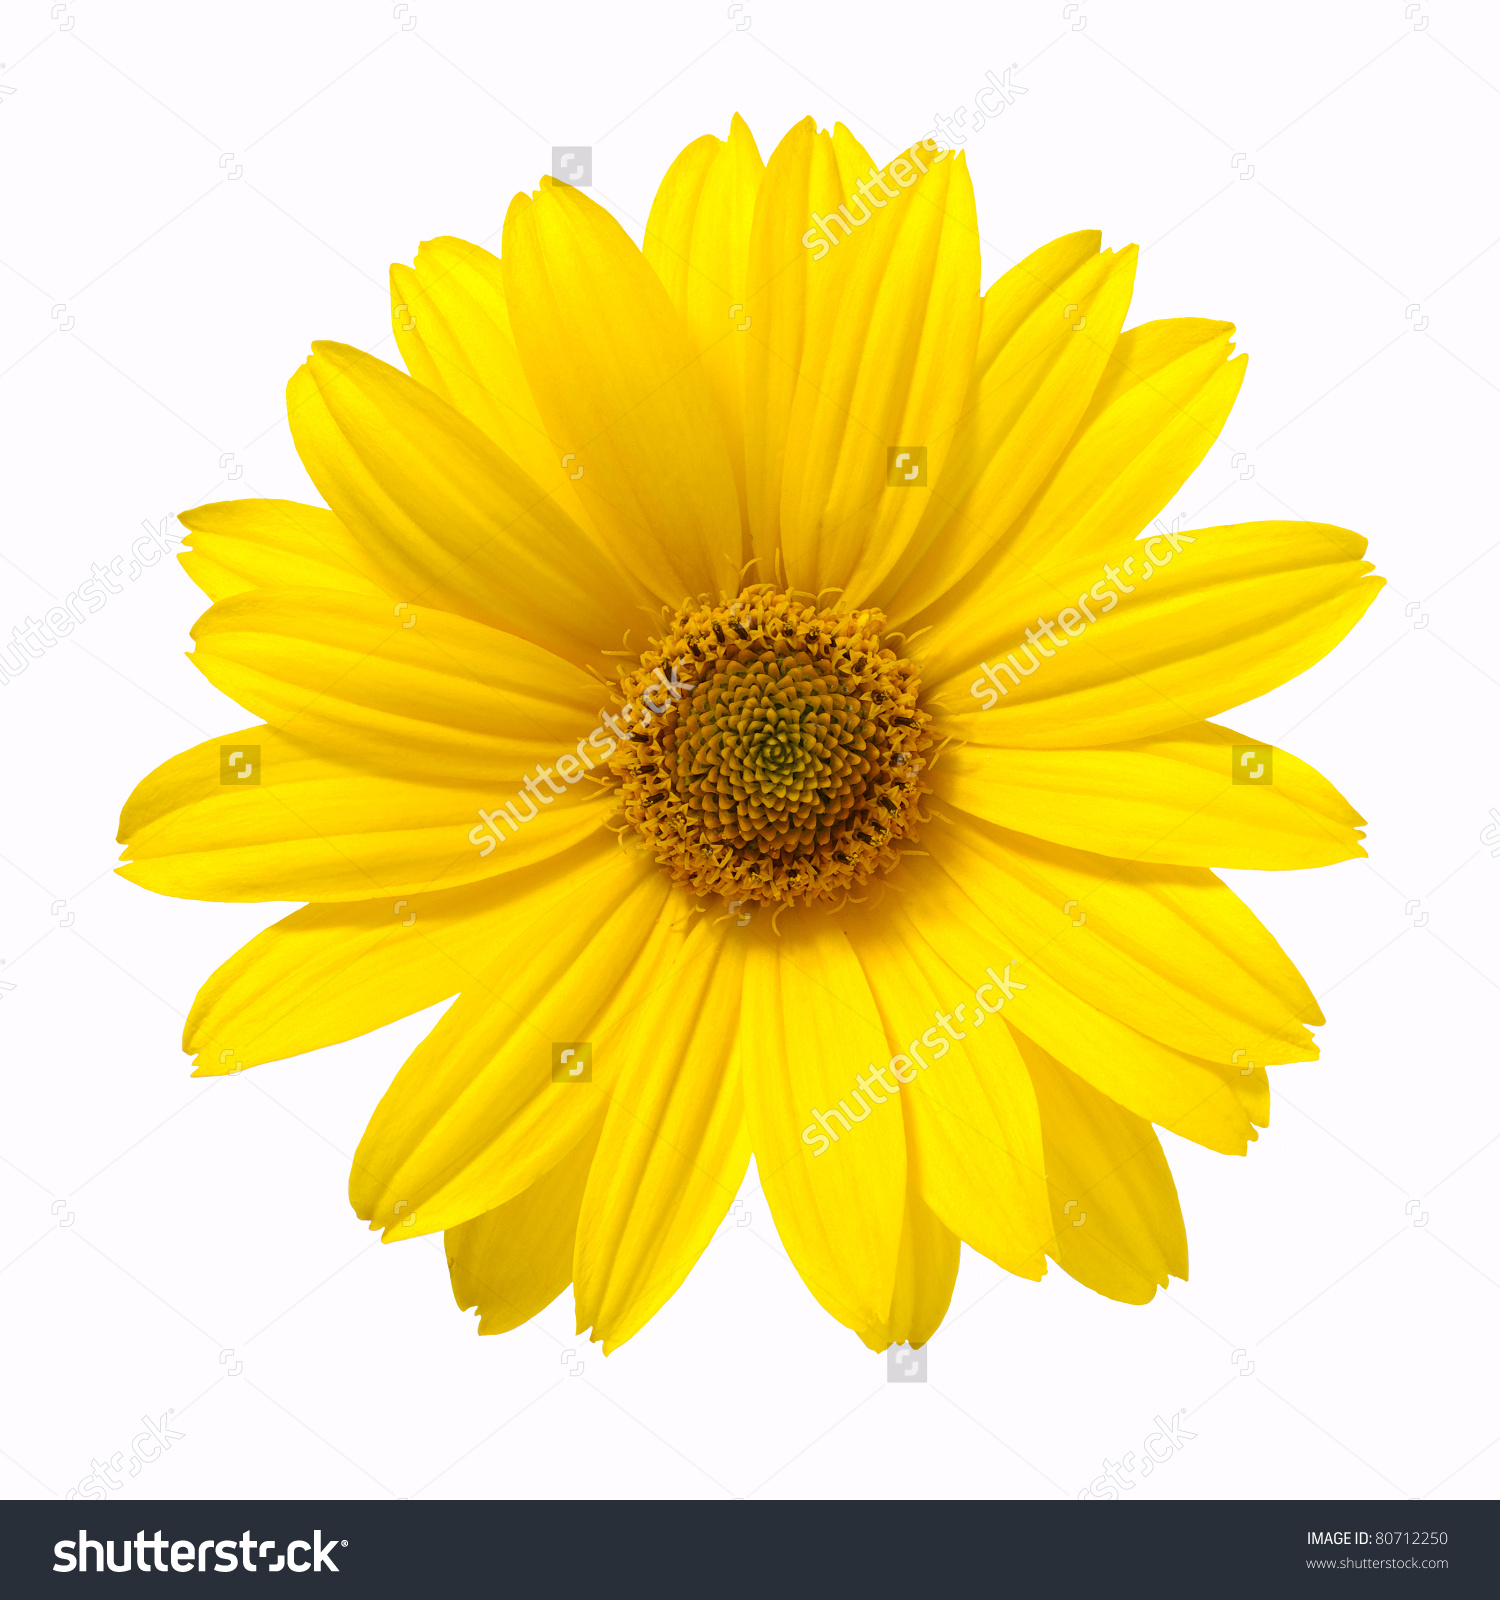 Free photo yellow flower yellow plant bloom free download yellow flower mightylinksfo